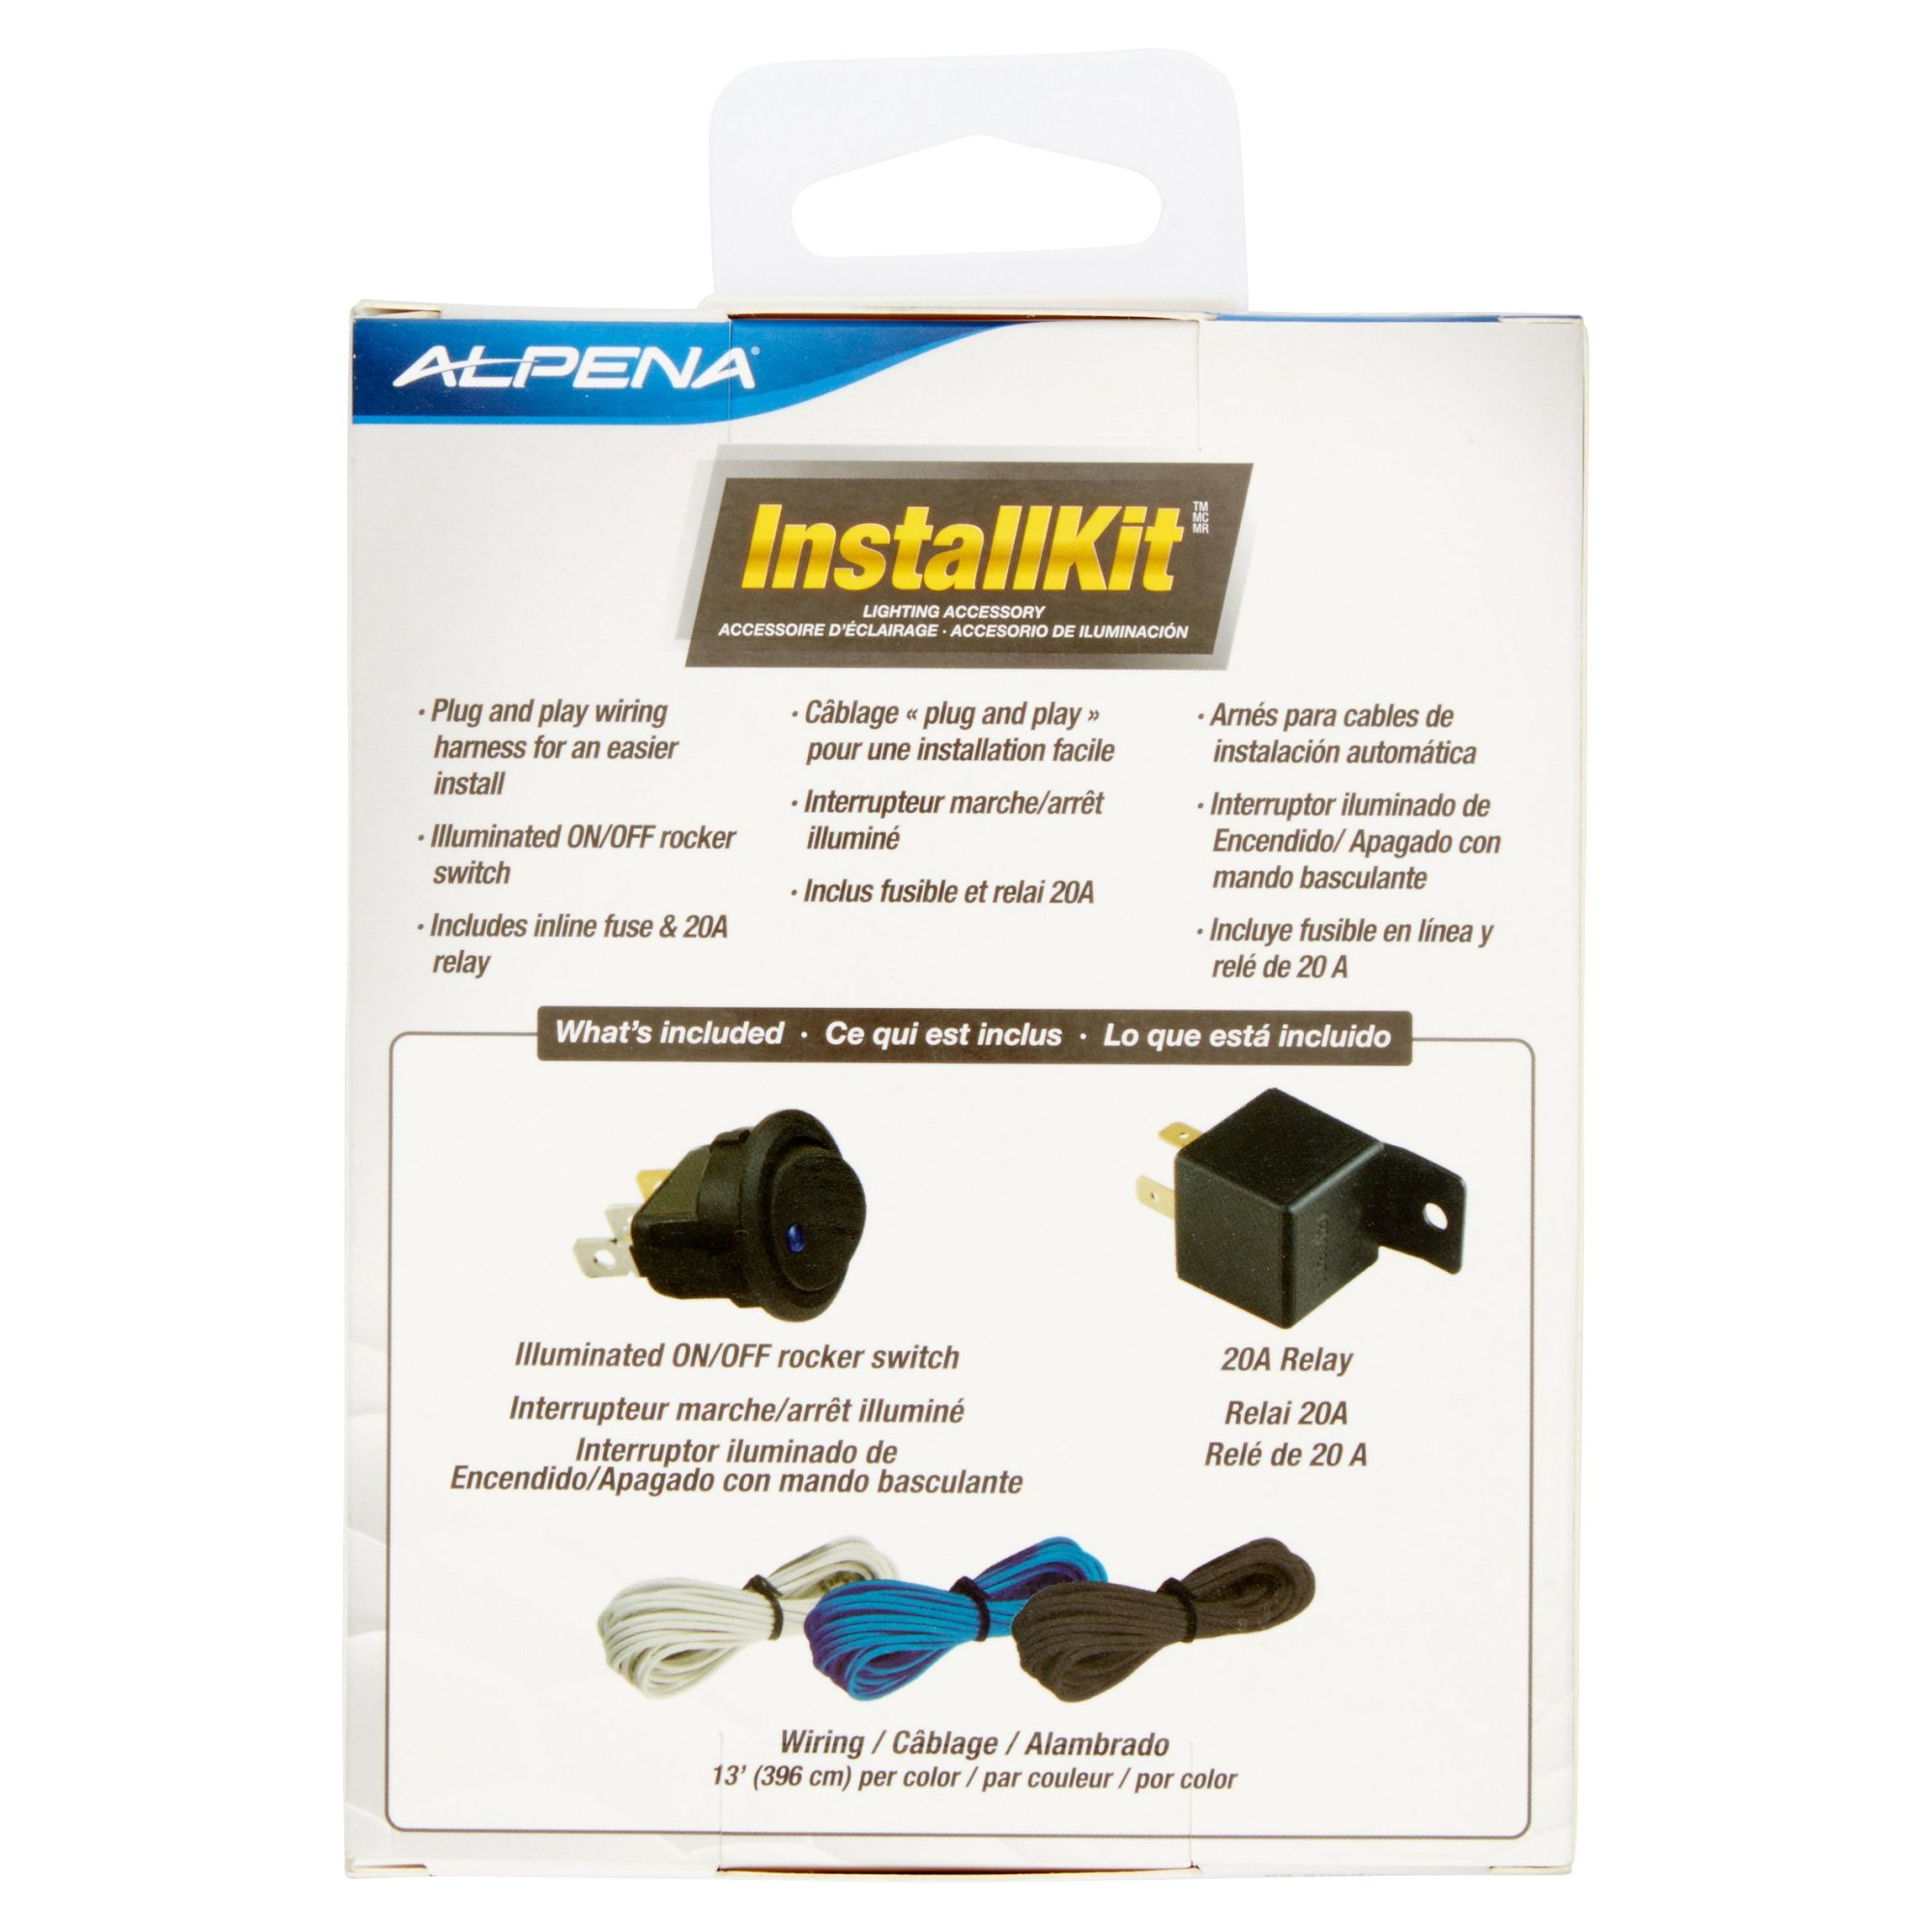 hight resolution of alpena universal automortive install kit on off rocker switch 20amp relay 3 wiring harness walmart com